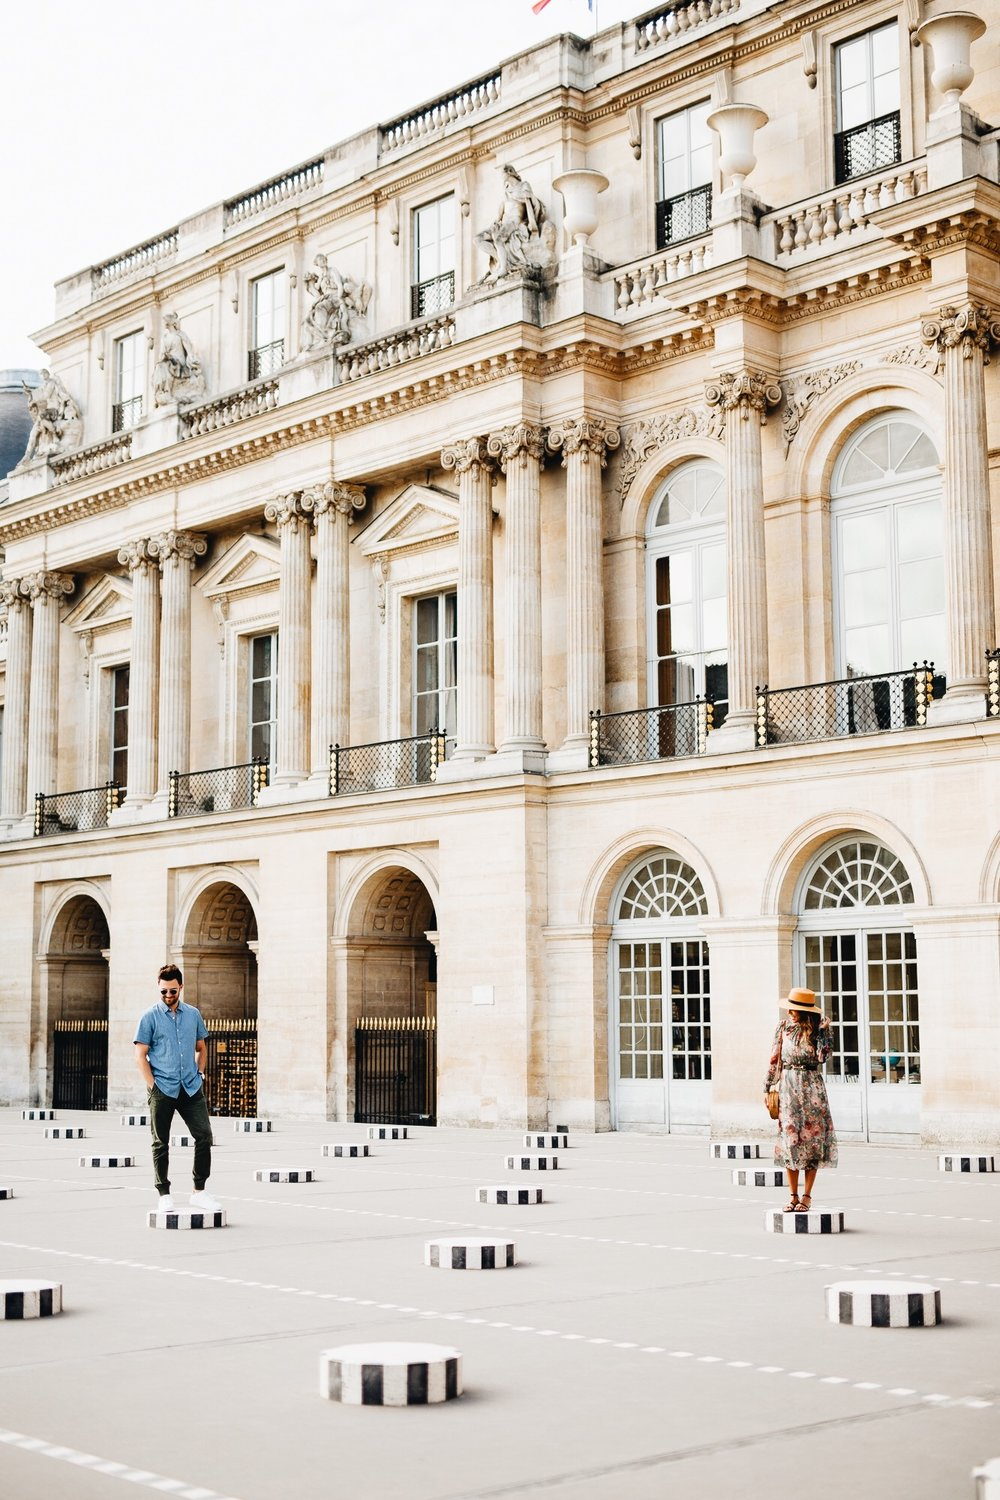 Palais Royale, Paris with Everyday Pursuits